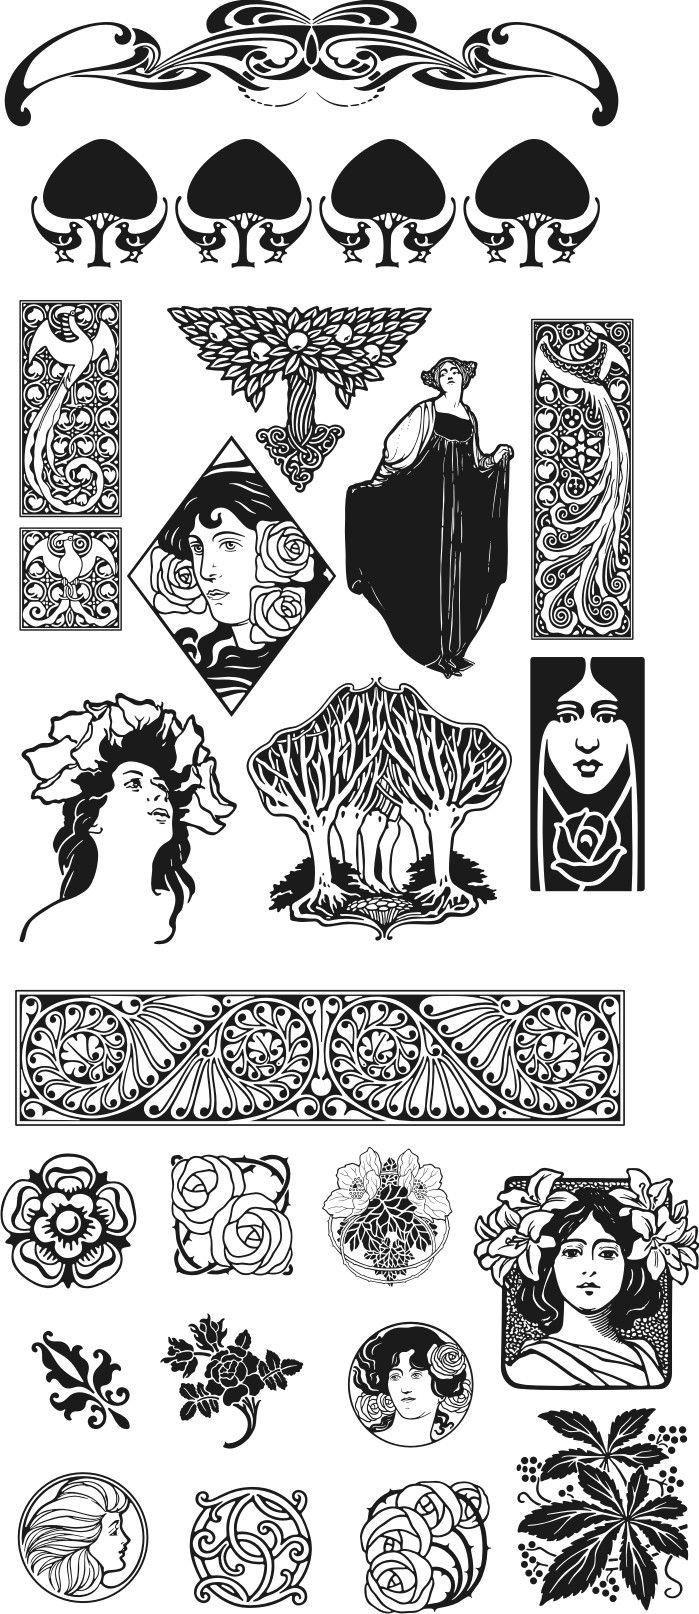 Arts Crafts Art Nouveau Vector Graphics Collection | eBay